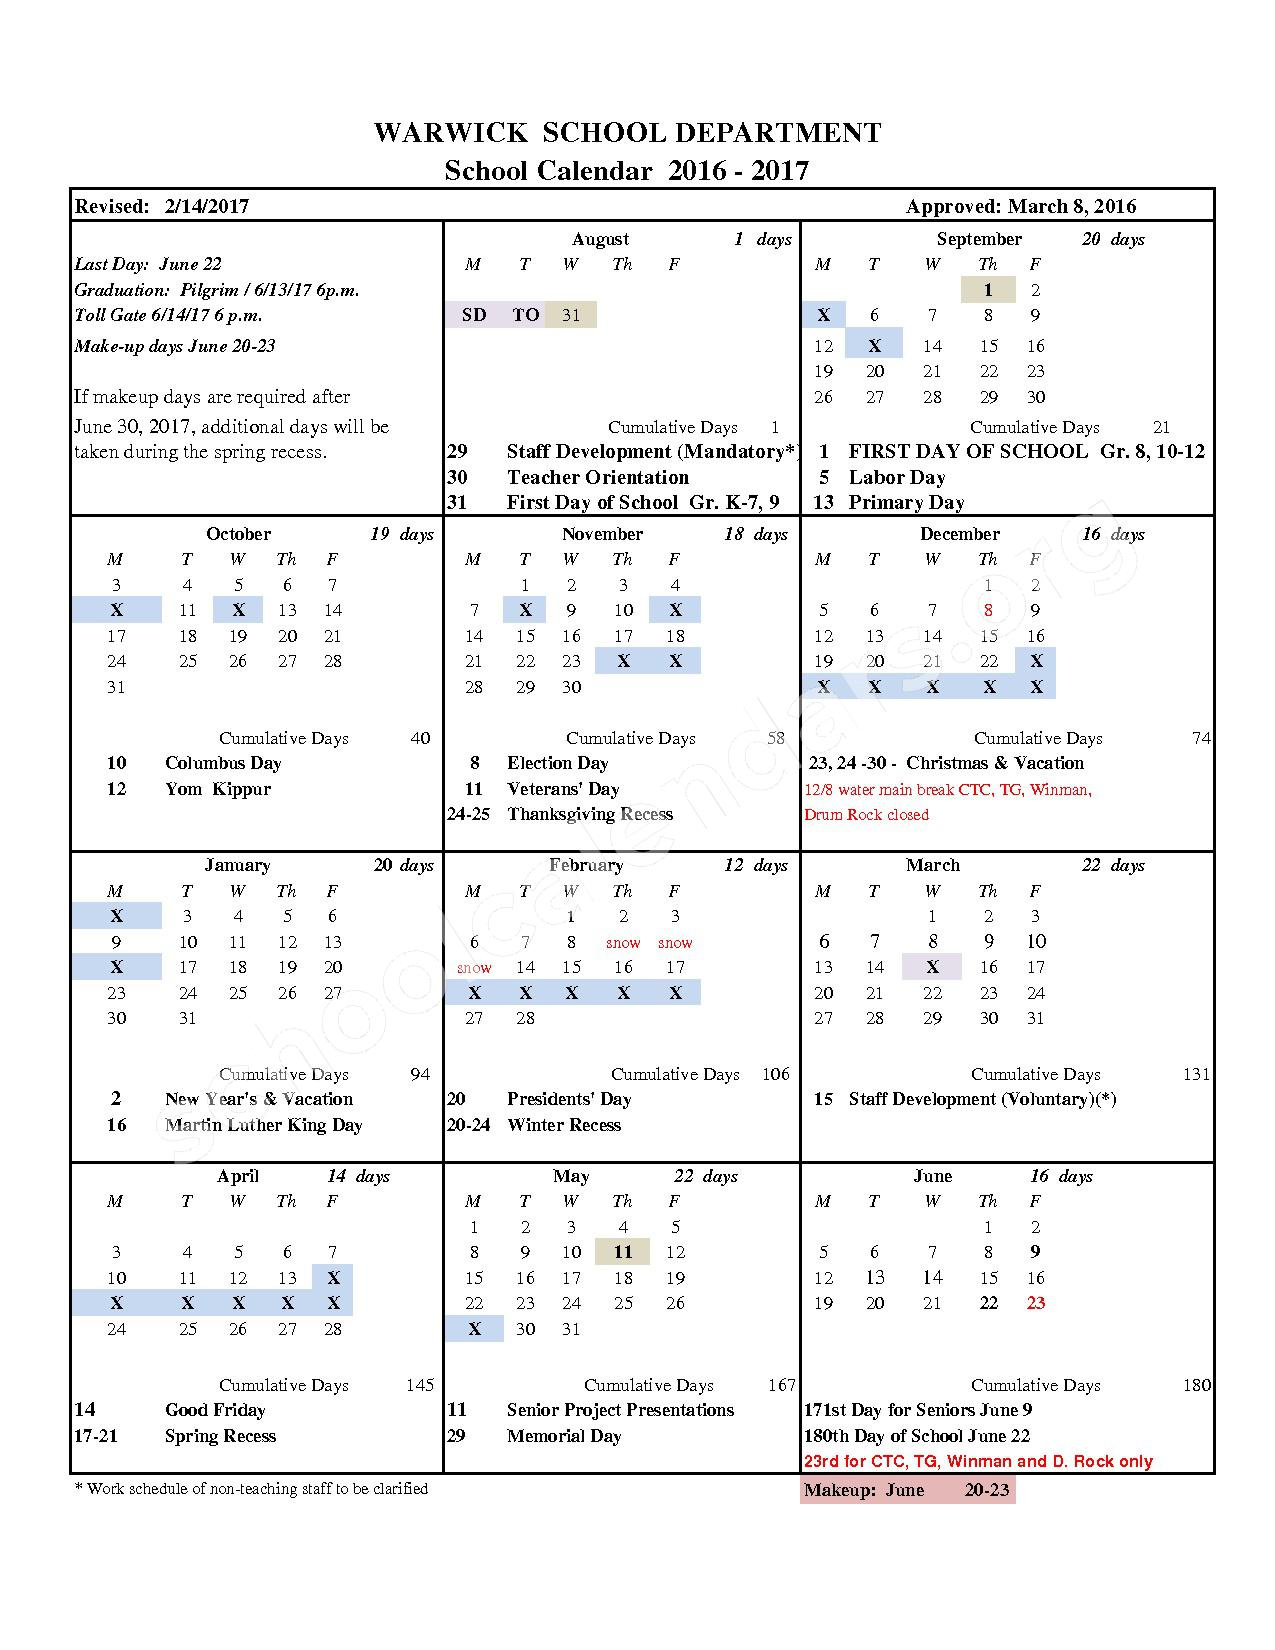 2016 - 2017 School Calendar (Revised) – Cottrell F. Hoxsie School – page 1